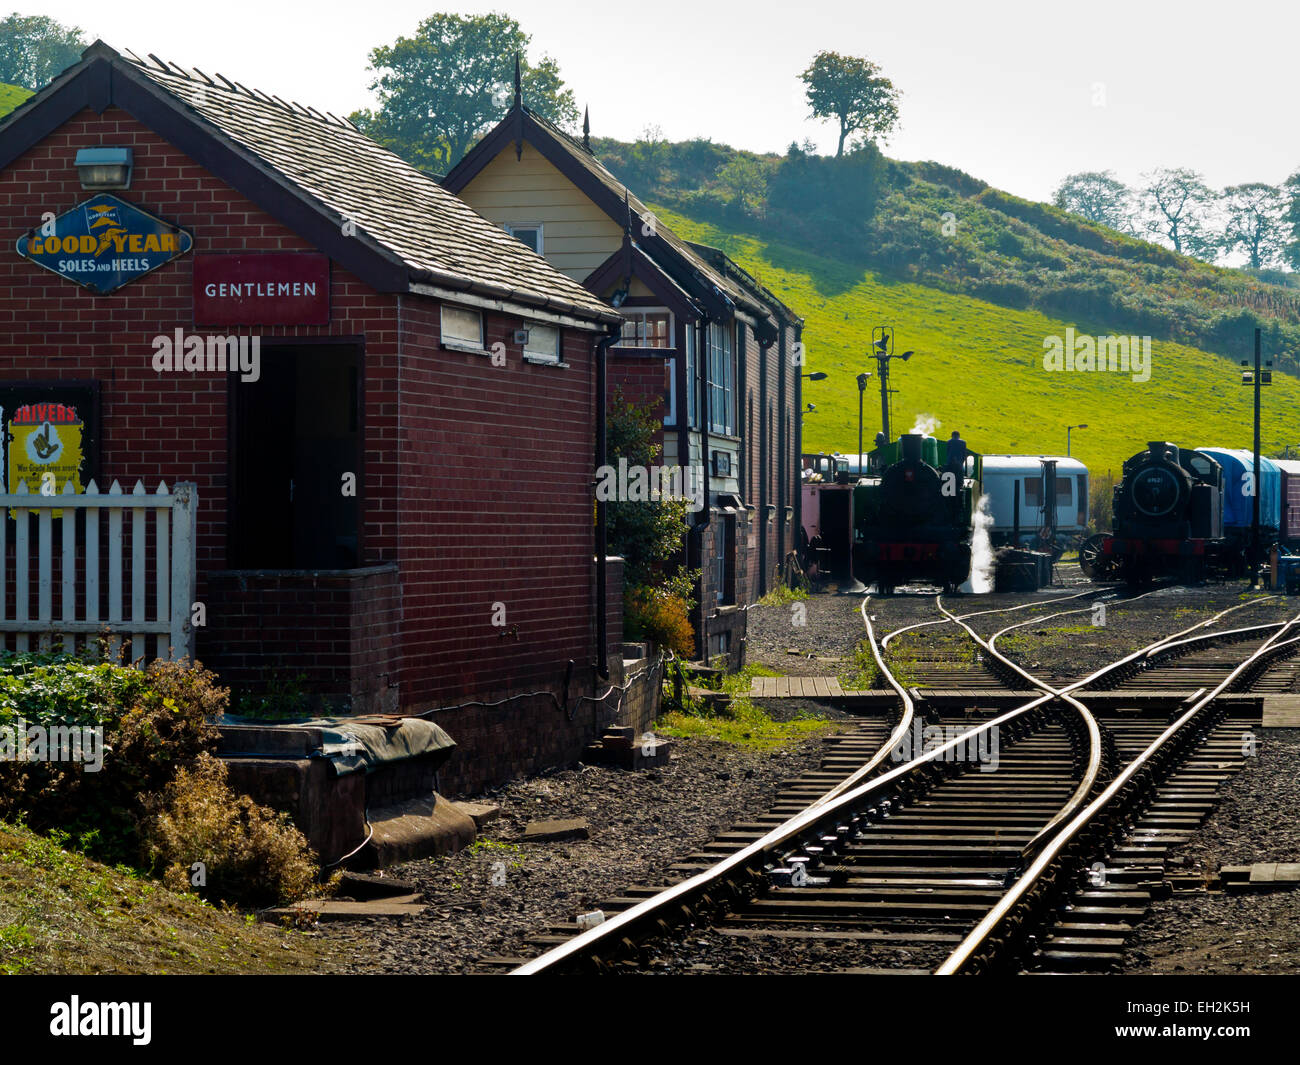 Steam engines on the sidings at Cheddleton railway station on the Churnet Valley Railway Staffordshire England, - Stock Image